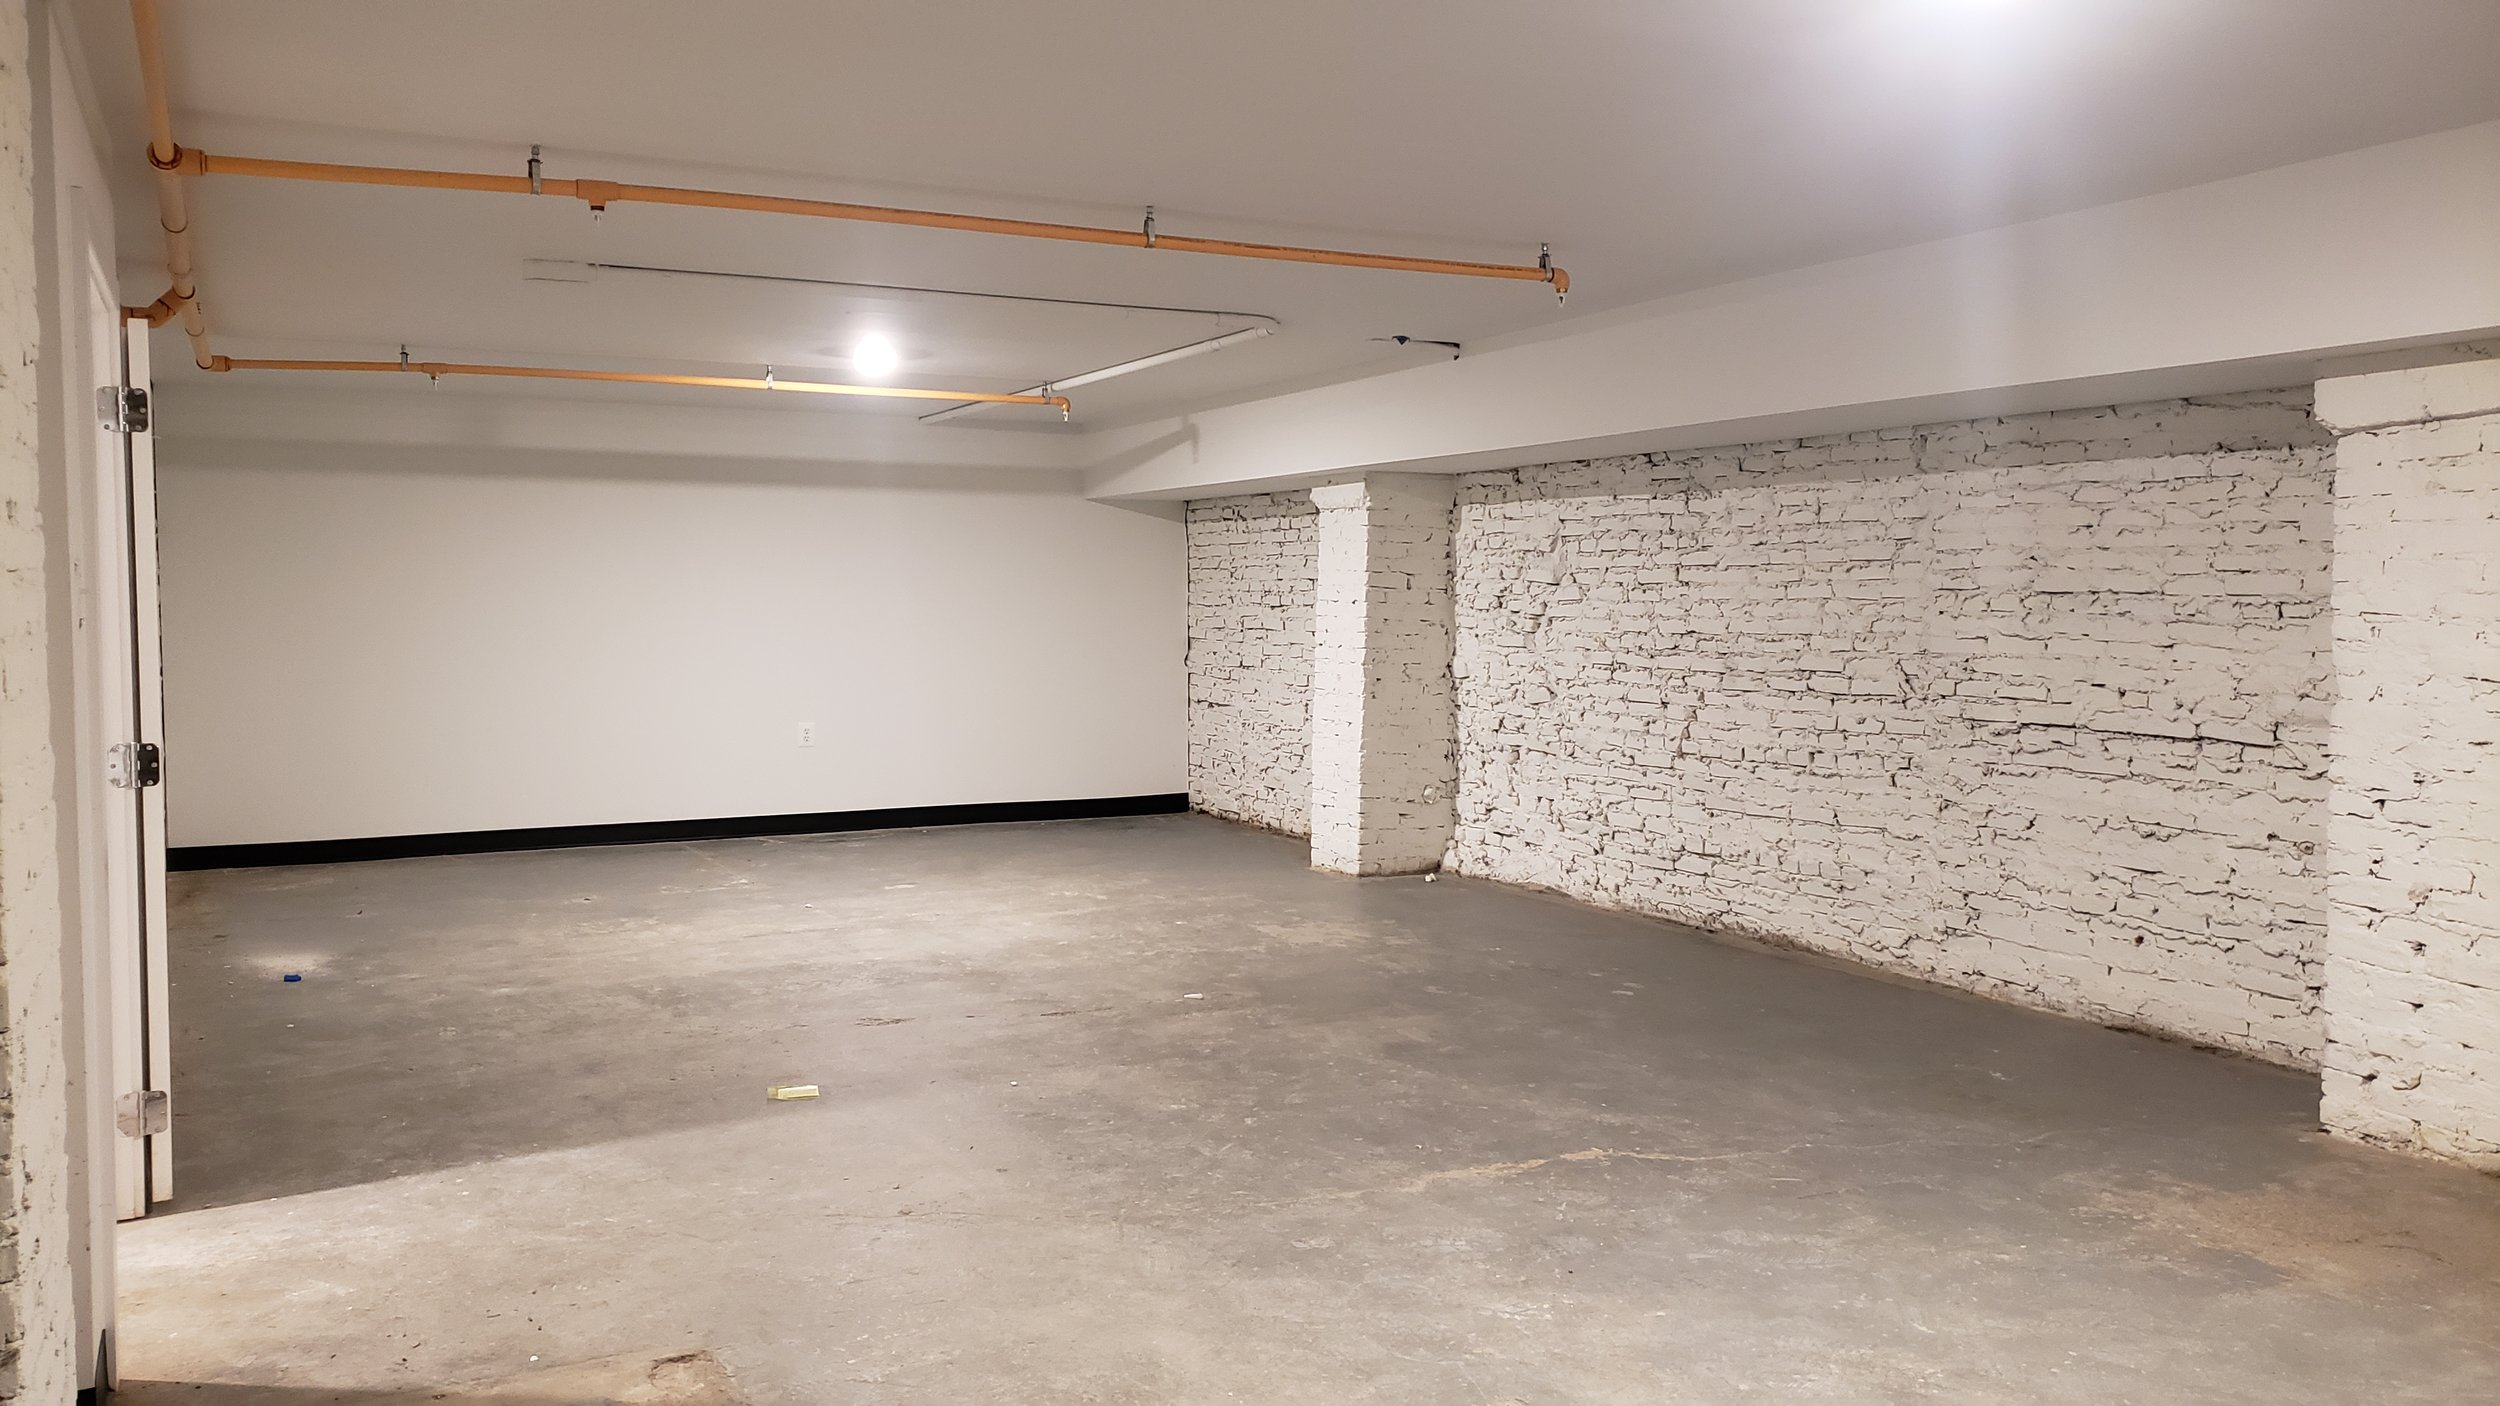 WHAT HAPPENED TO THE DUNGEON?  SorryNotsorry, our once-very-creepy basement is now home to 8 lovely affordable studio spaces.